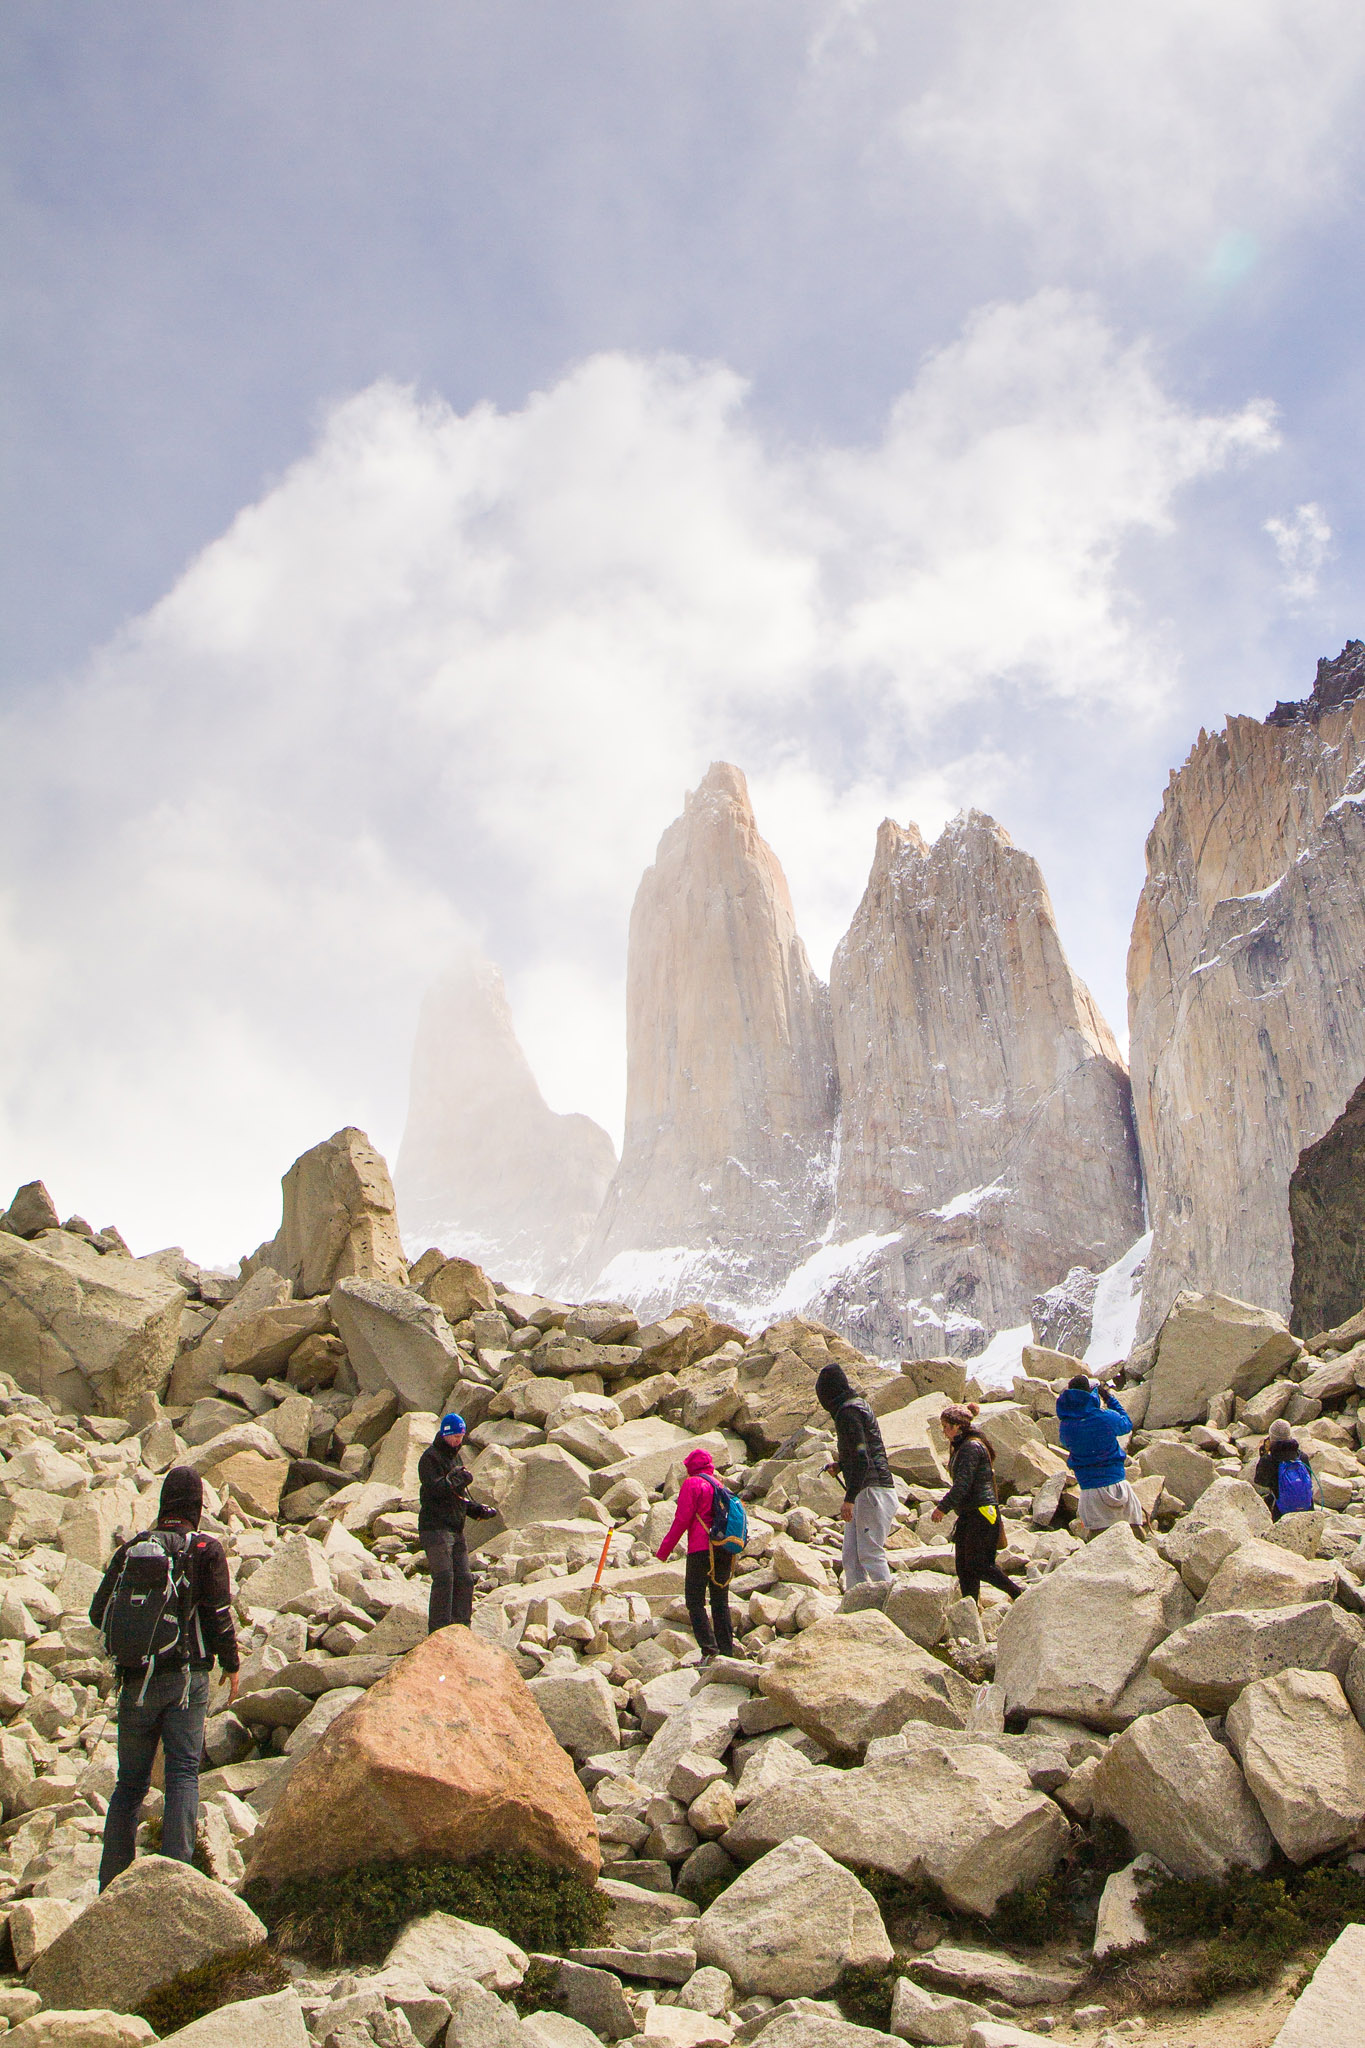 Wedding-Travellers-Overlanding-Destination-Wedding-Chile-Torres-del-Paine-Tres-Torres-Three-Towers-clouds-people-hiking-trail